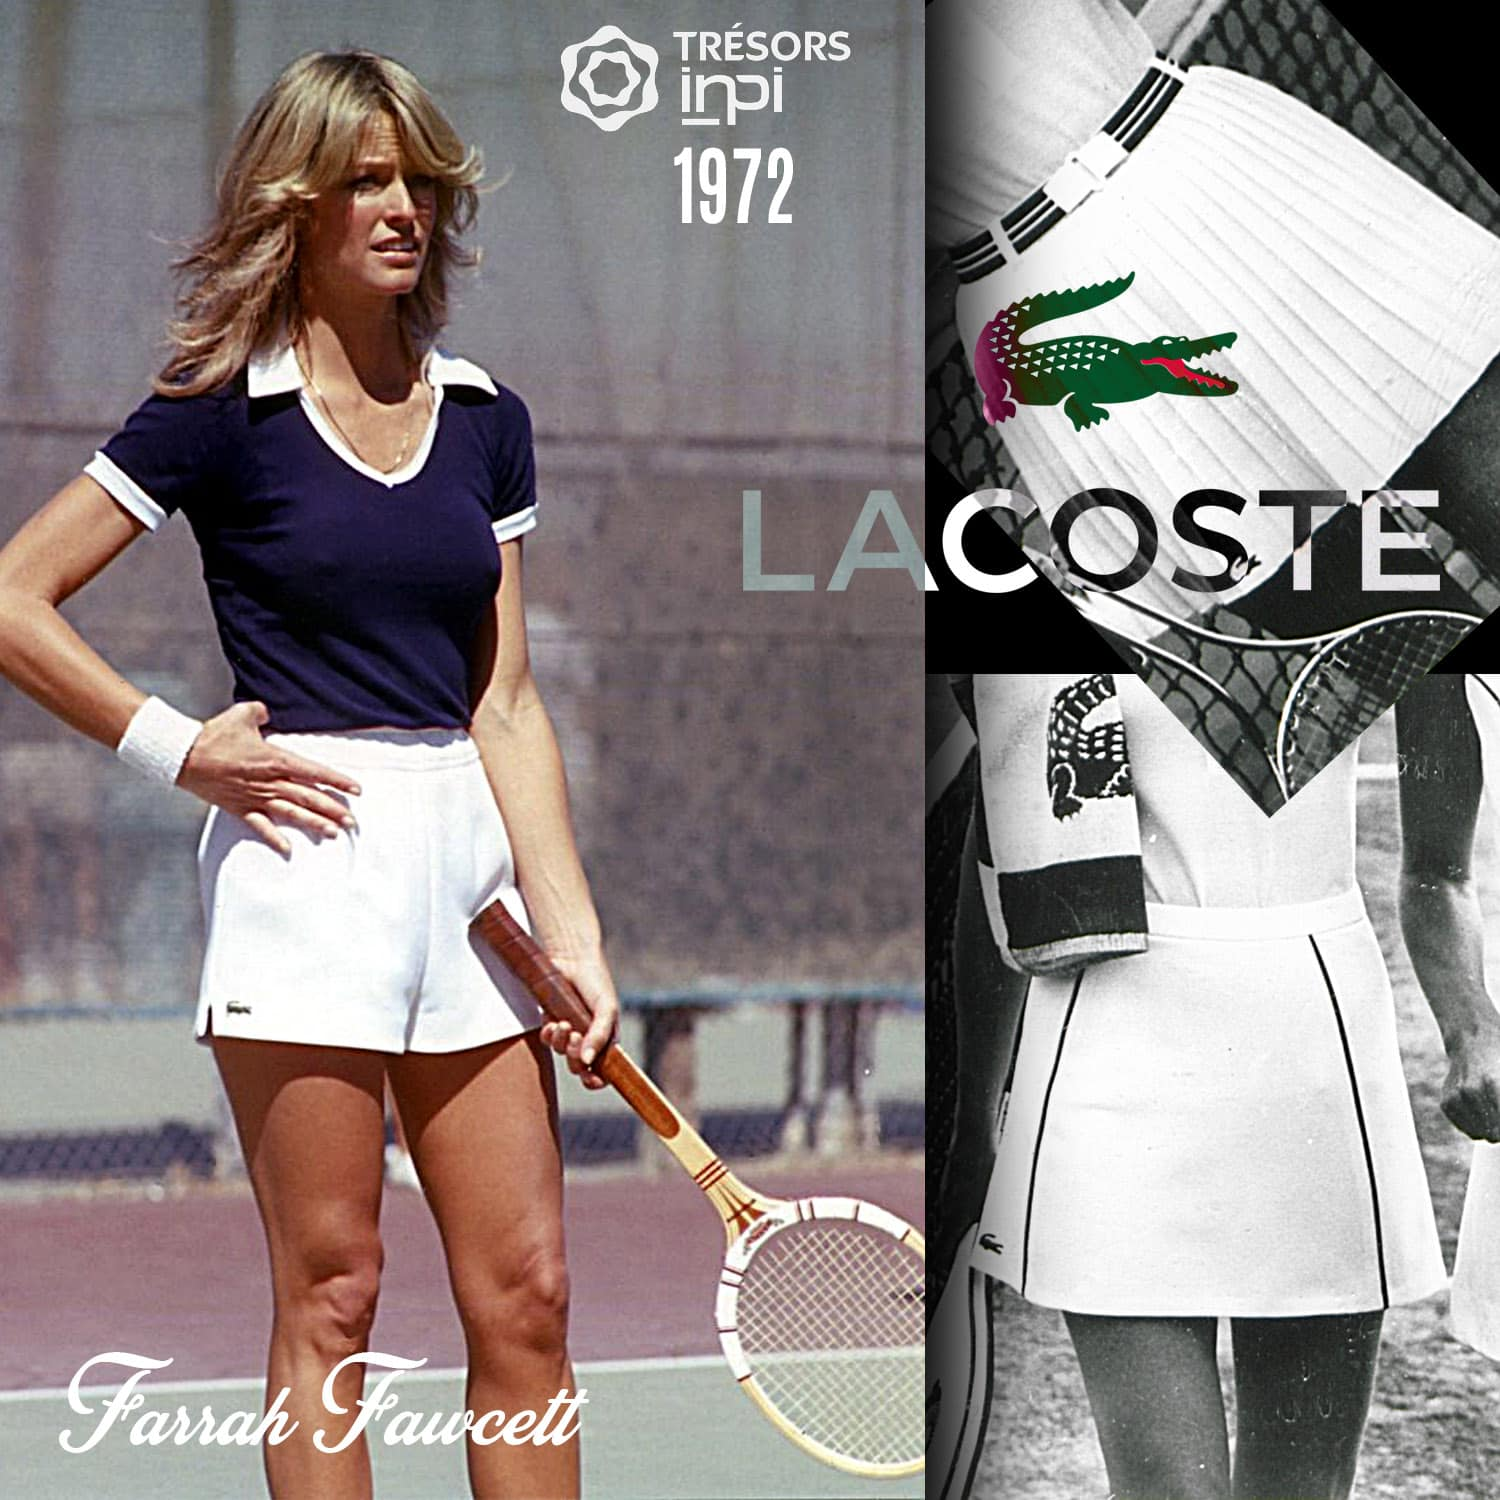 Lacoste 1972 tennis mini-skirt invention - Lacoste for Farrah Fawcett - INPI archives